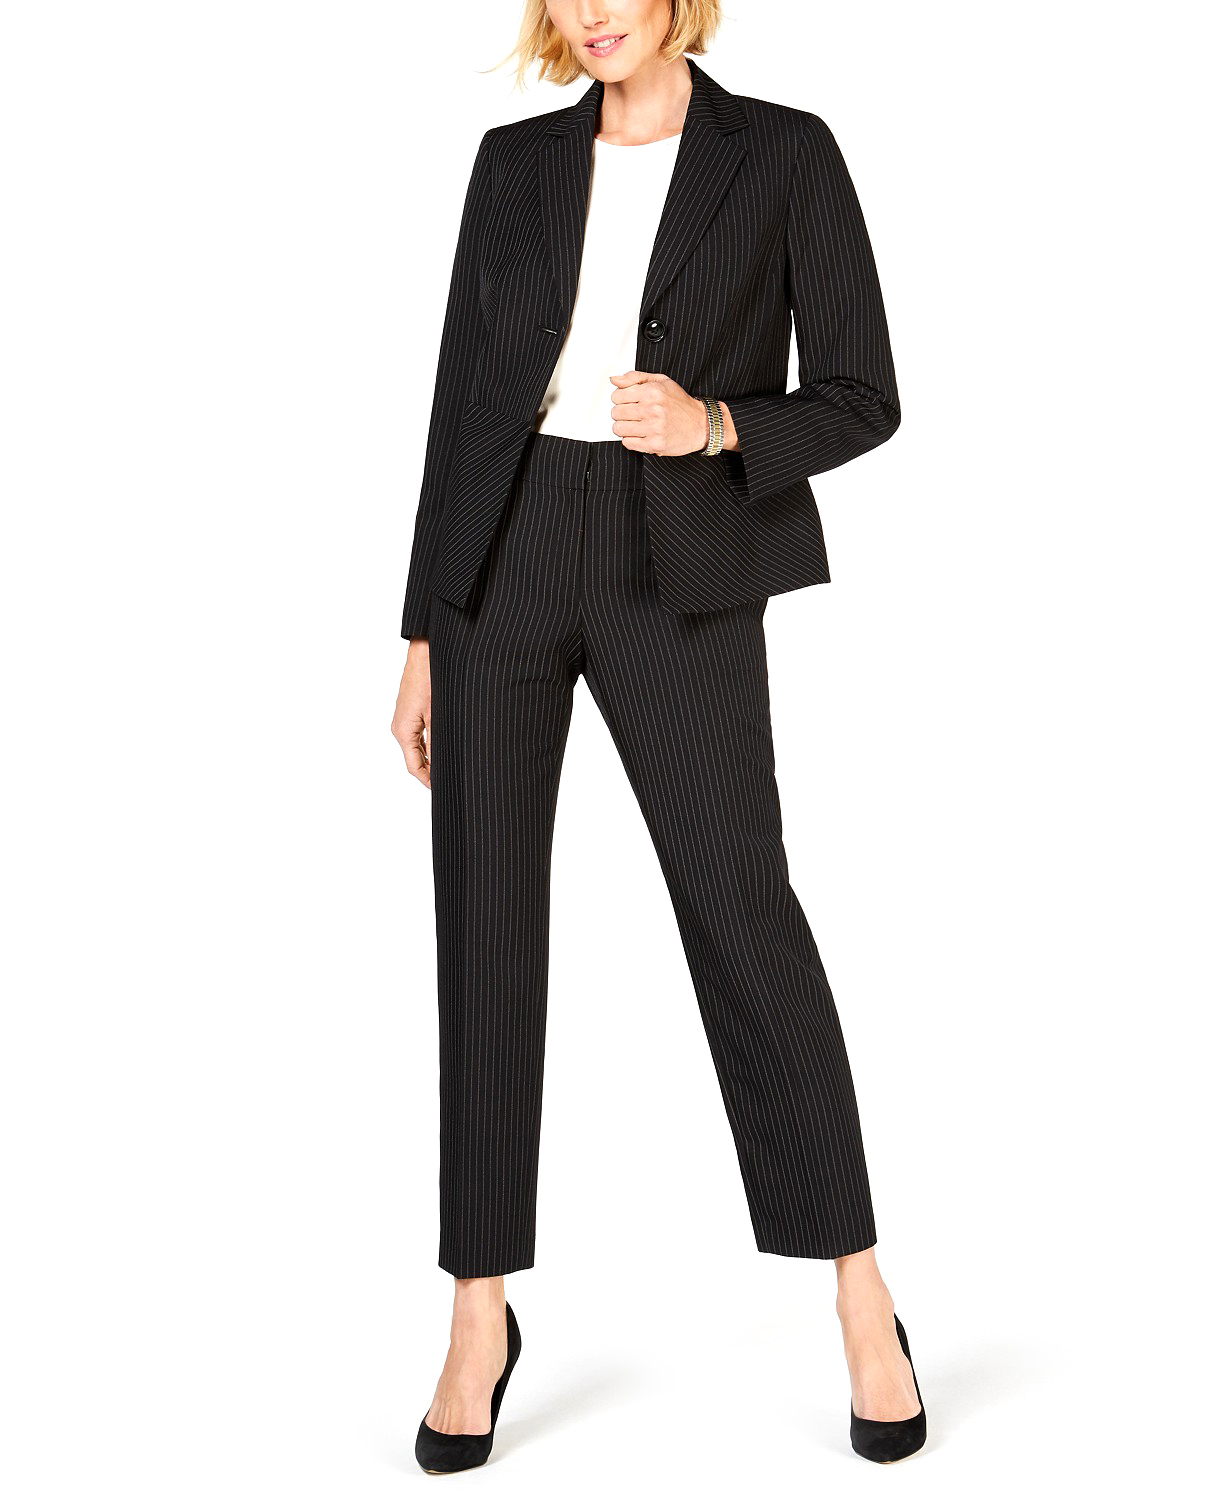 Le_Suit_|_wo-Button_Notch_Collar_Dot_Pinstripe_Pants_Suit_|_Black_Whit